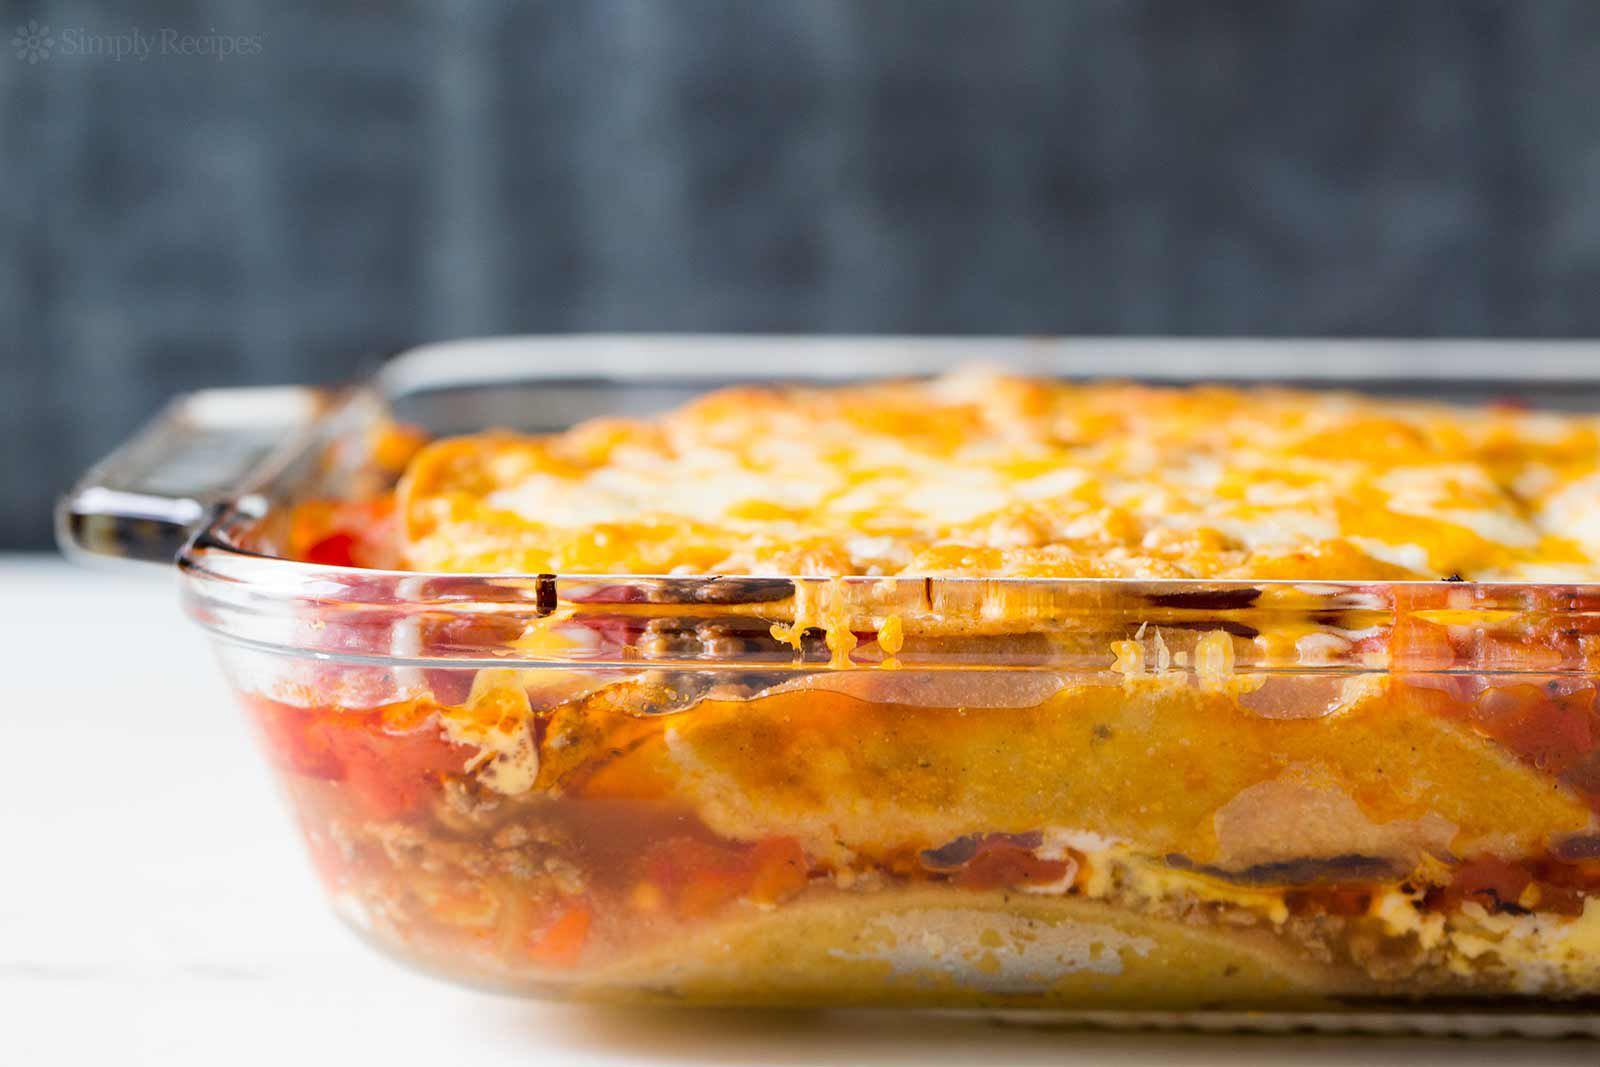 Mexican Lasagna made with tortillas, beef, beans, and cheese ready to serve